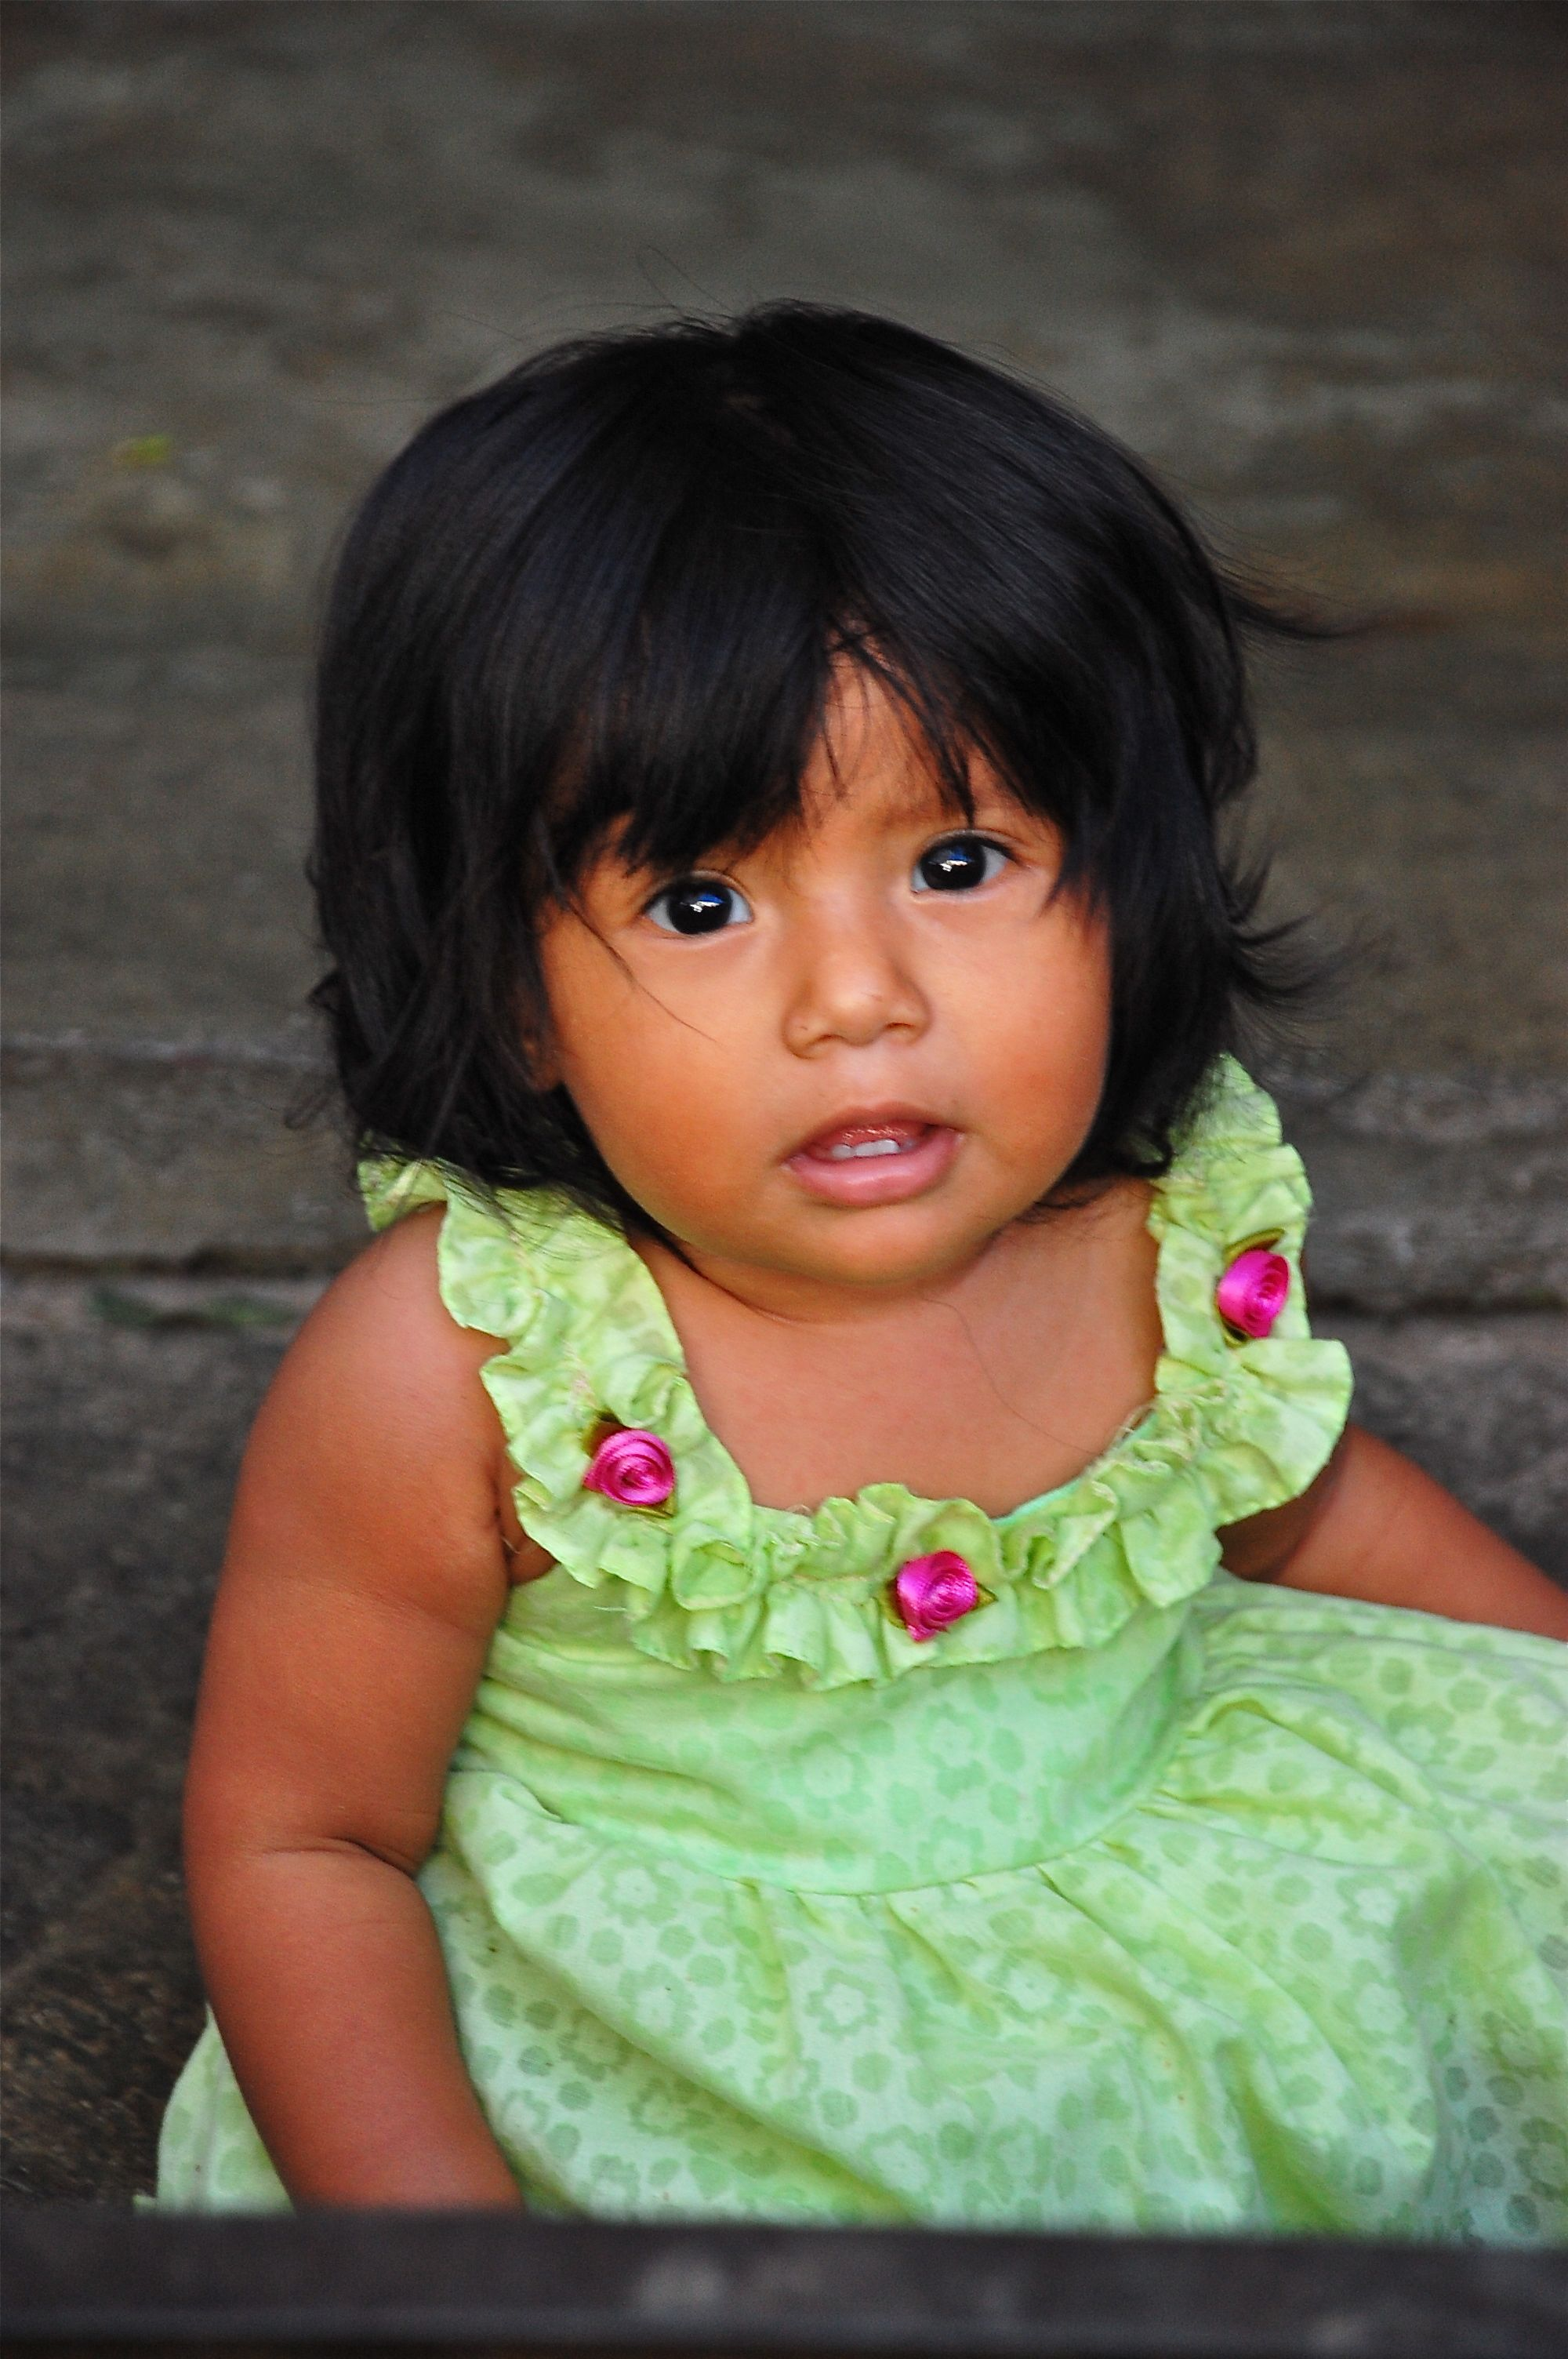 Beautiful little girl at Market day in Pochutla, Mexico.